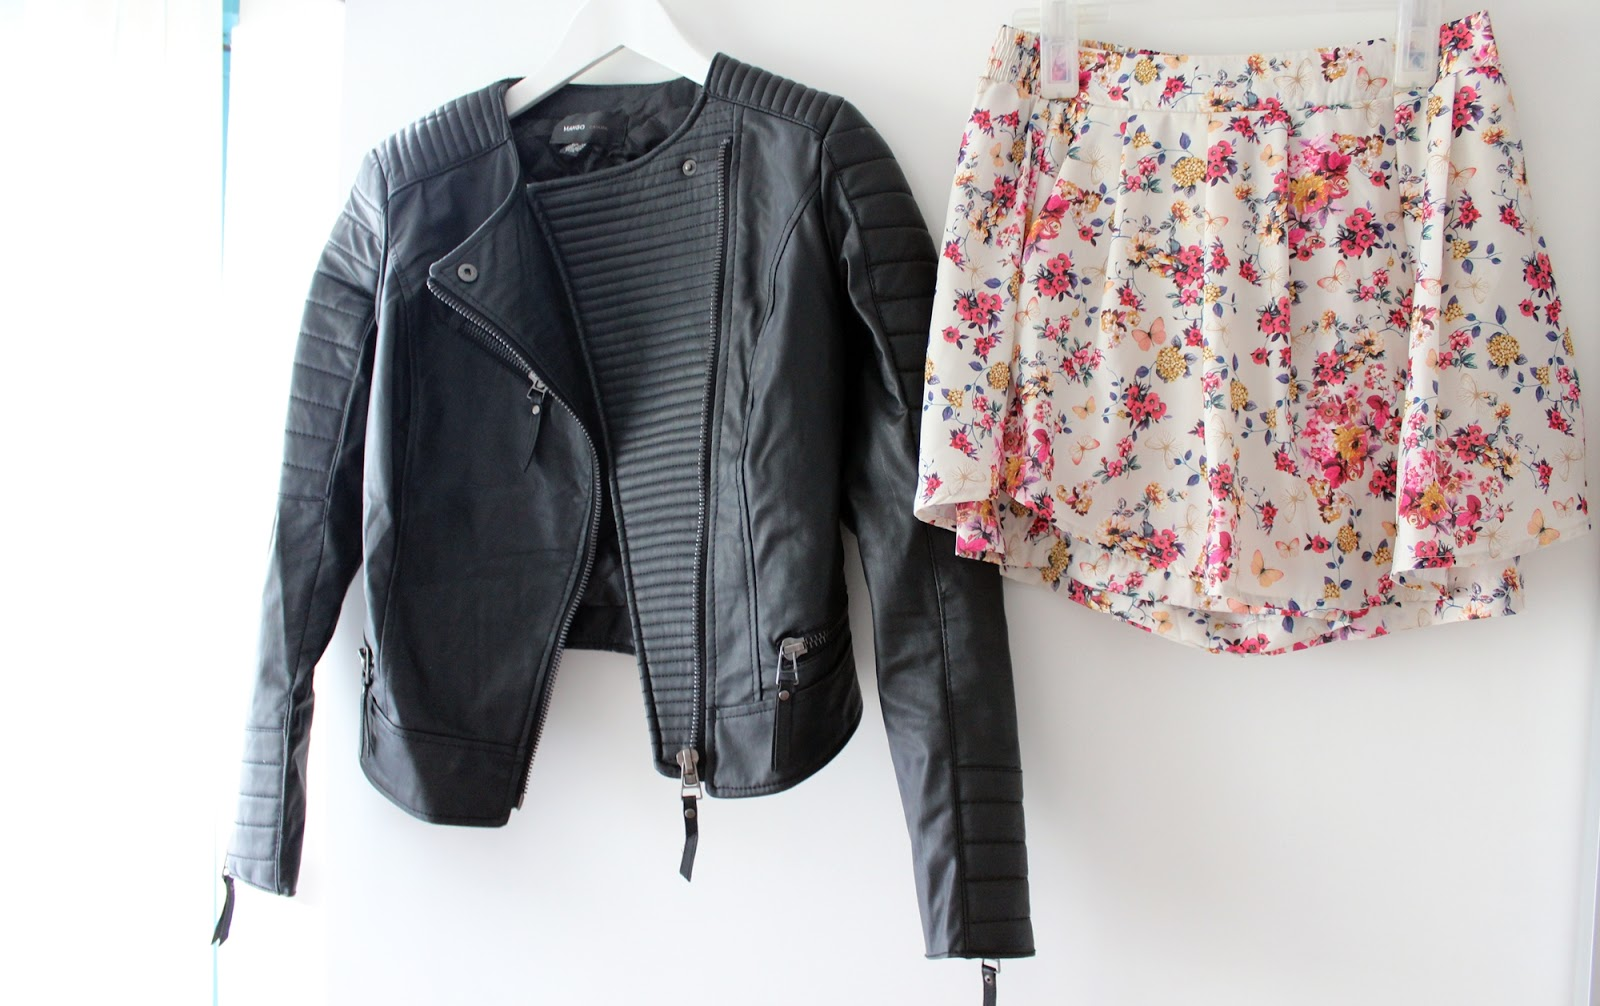 Barcelona shopping haul stradivarius mango skorts flowerprint leatherjacket